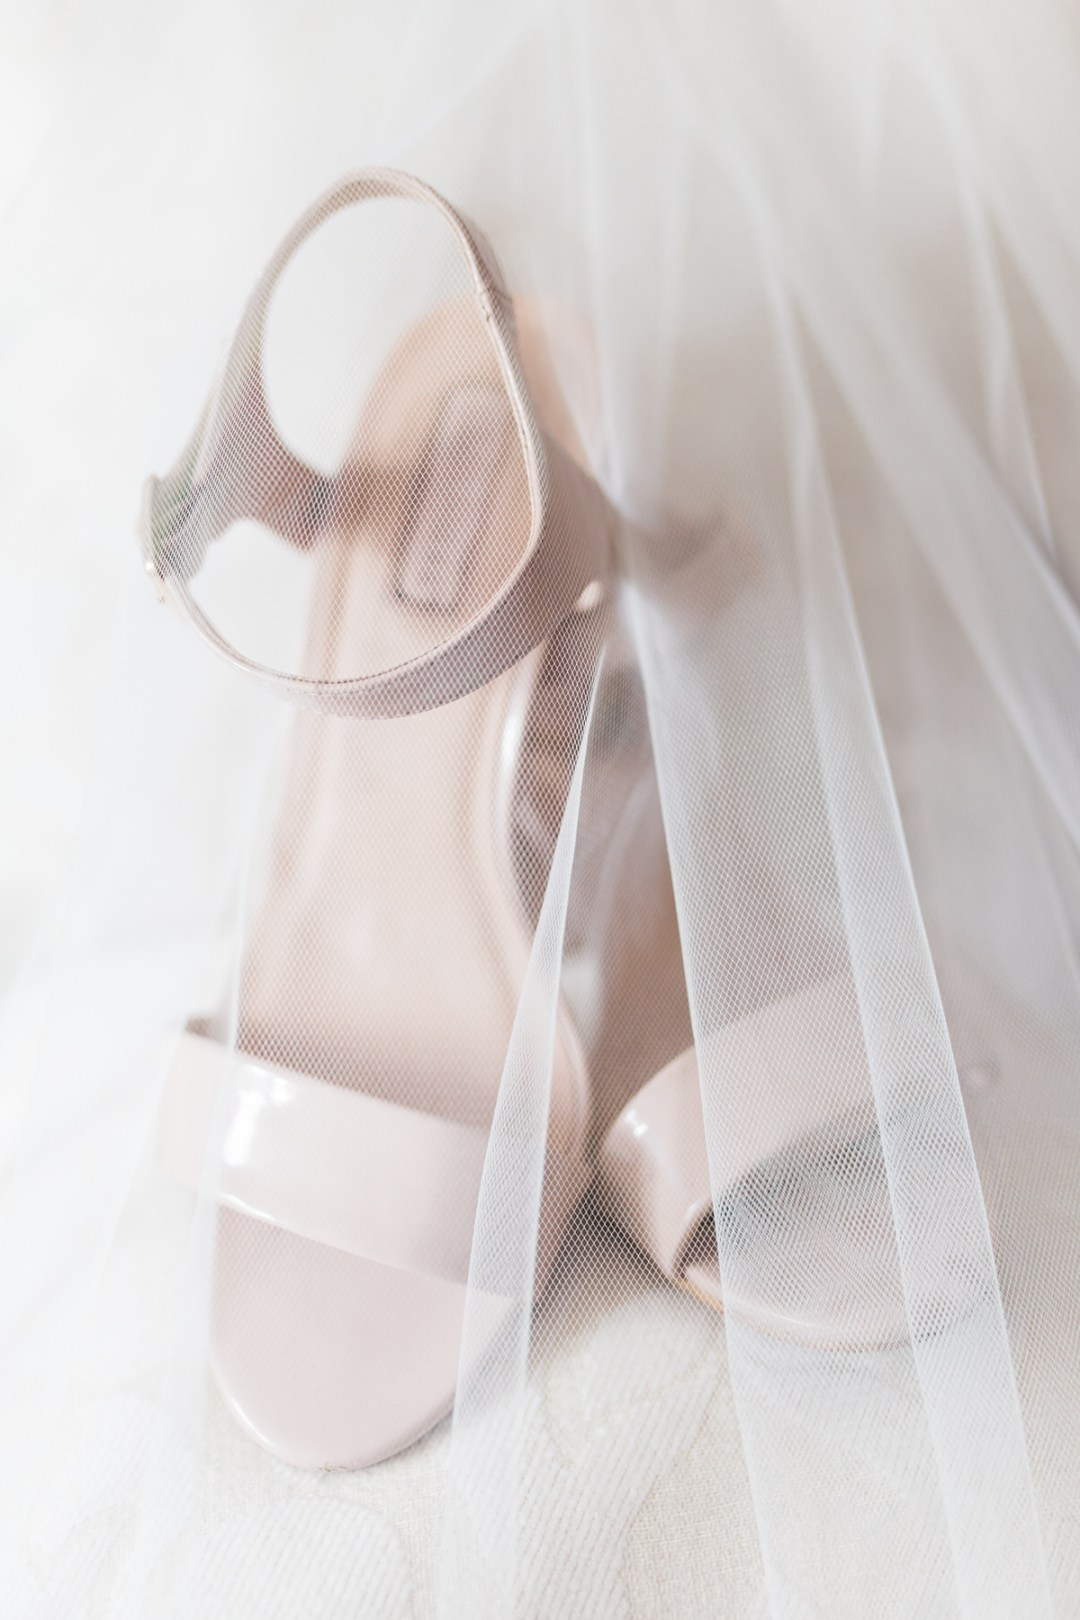 Bridal shoes and veil